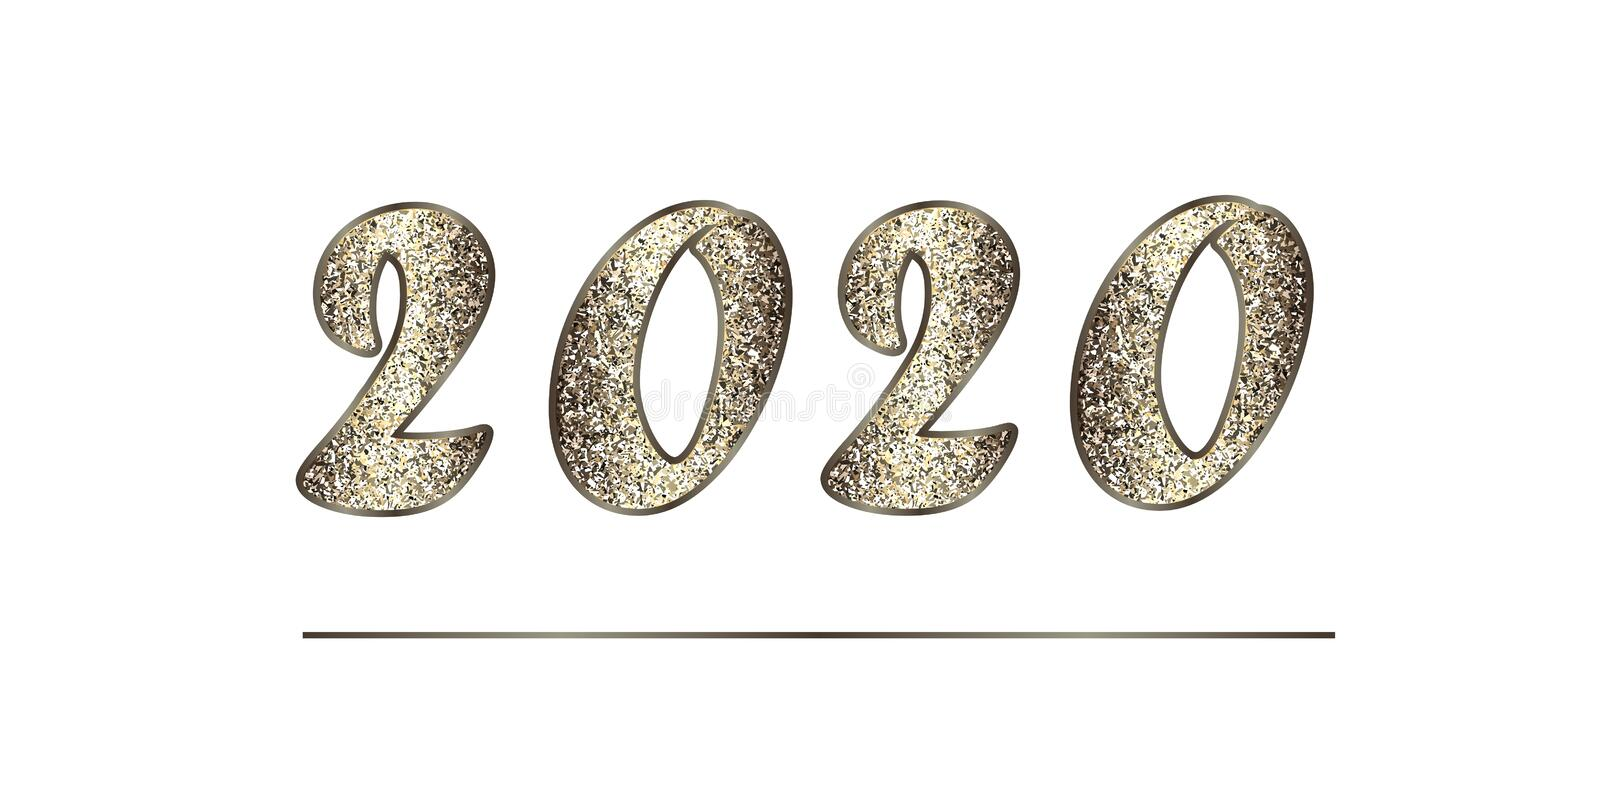 Christmas illustration in golden-brown tones with glitter. Shiny numbers 2020 New Year, isolated on white. stock photo